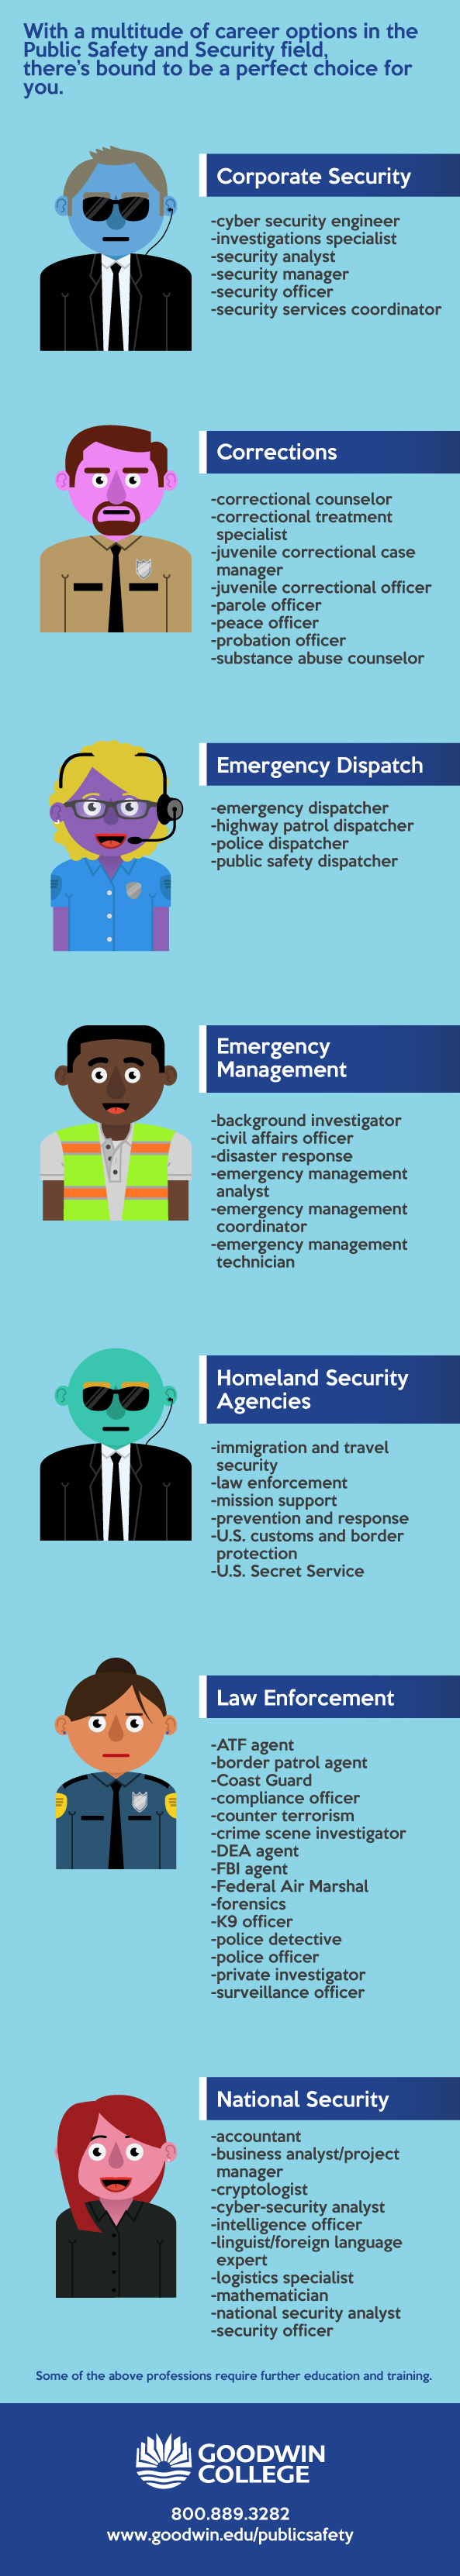 public-safety-and-security_body